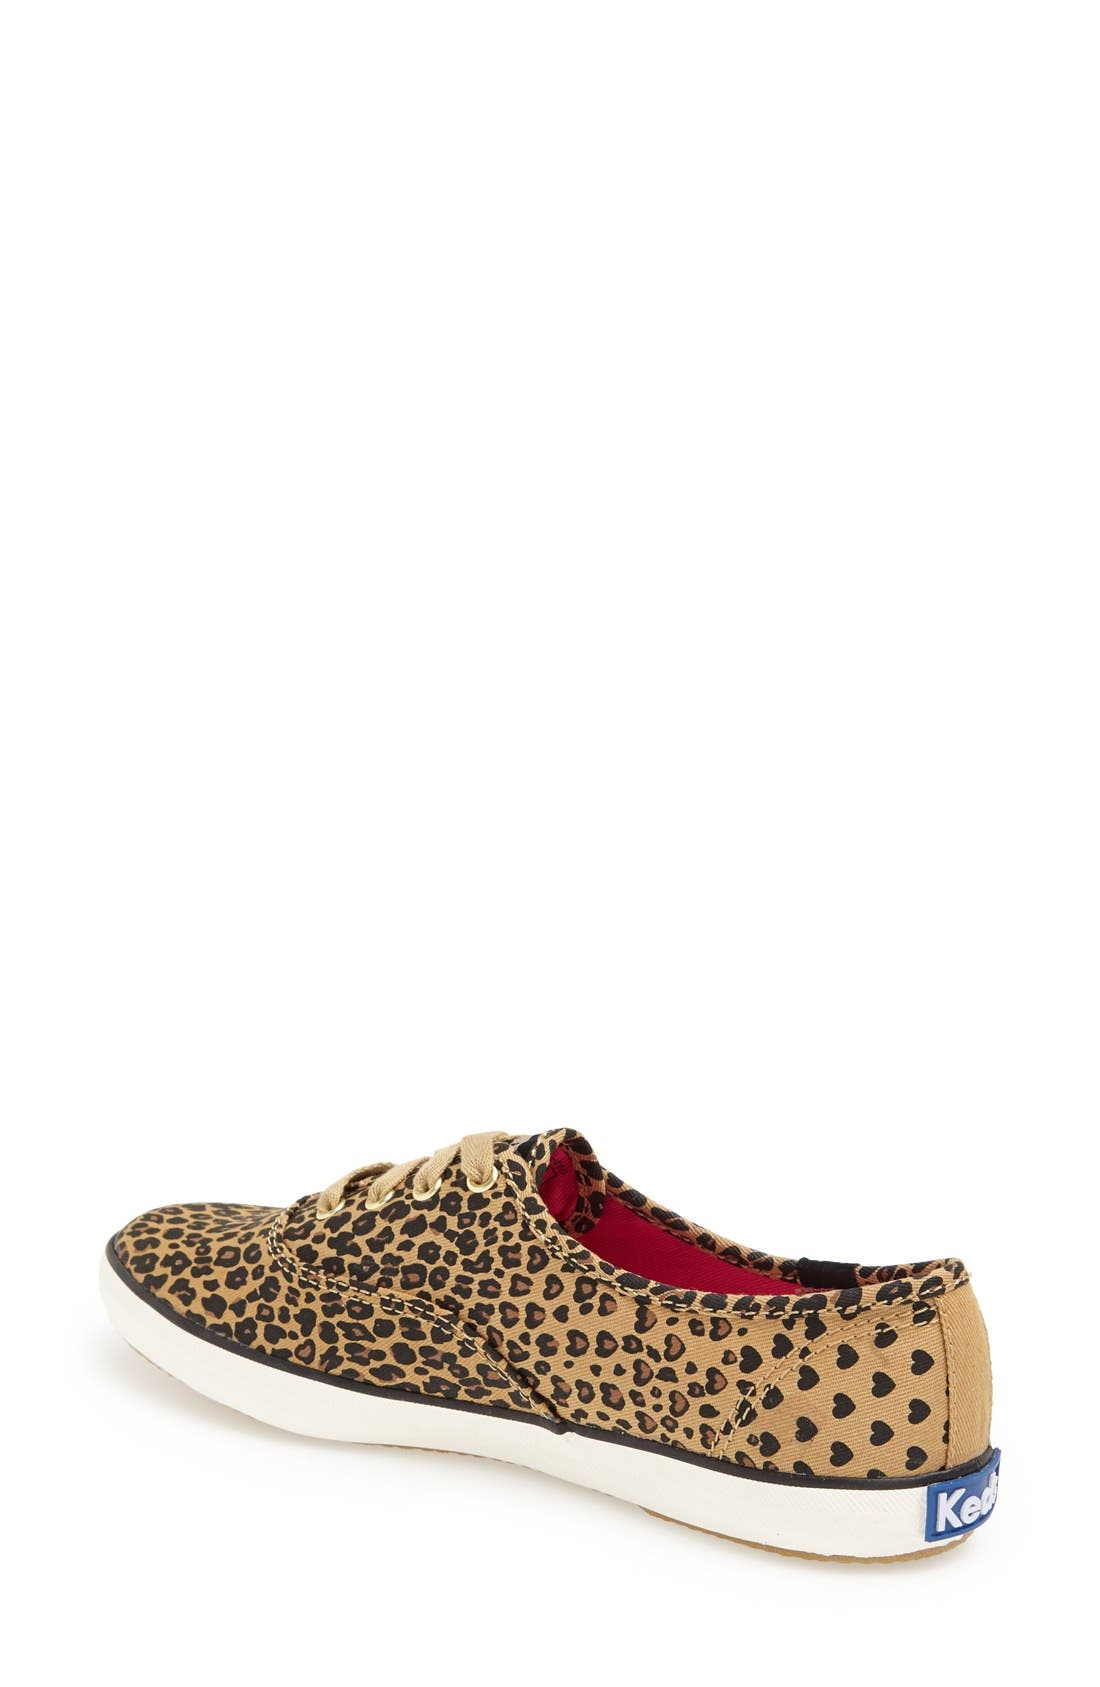 Alternate Image 2  - Keds® 'Champion - Leopard' Sneaker (Women)